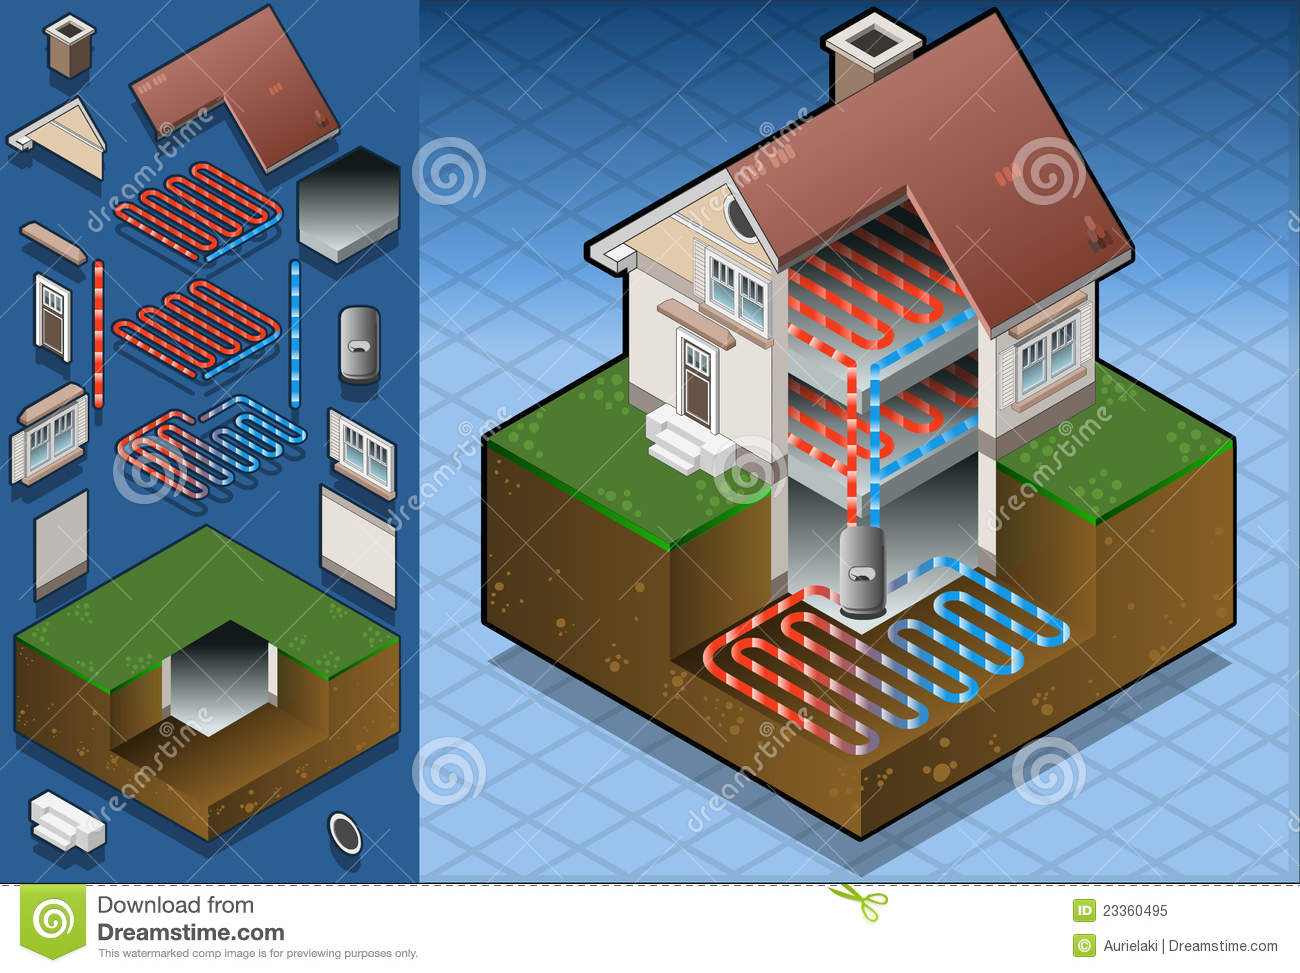 Geothermal Heat Pump/underfloorheating Diagram Royalty Free Stock ...